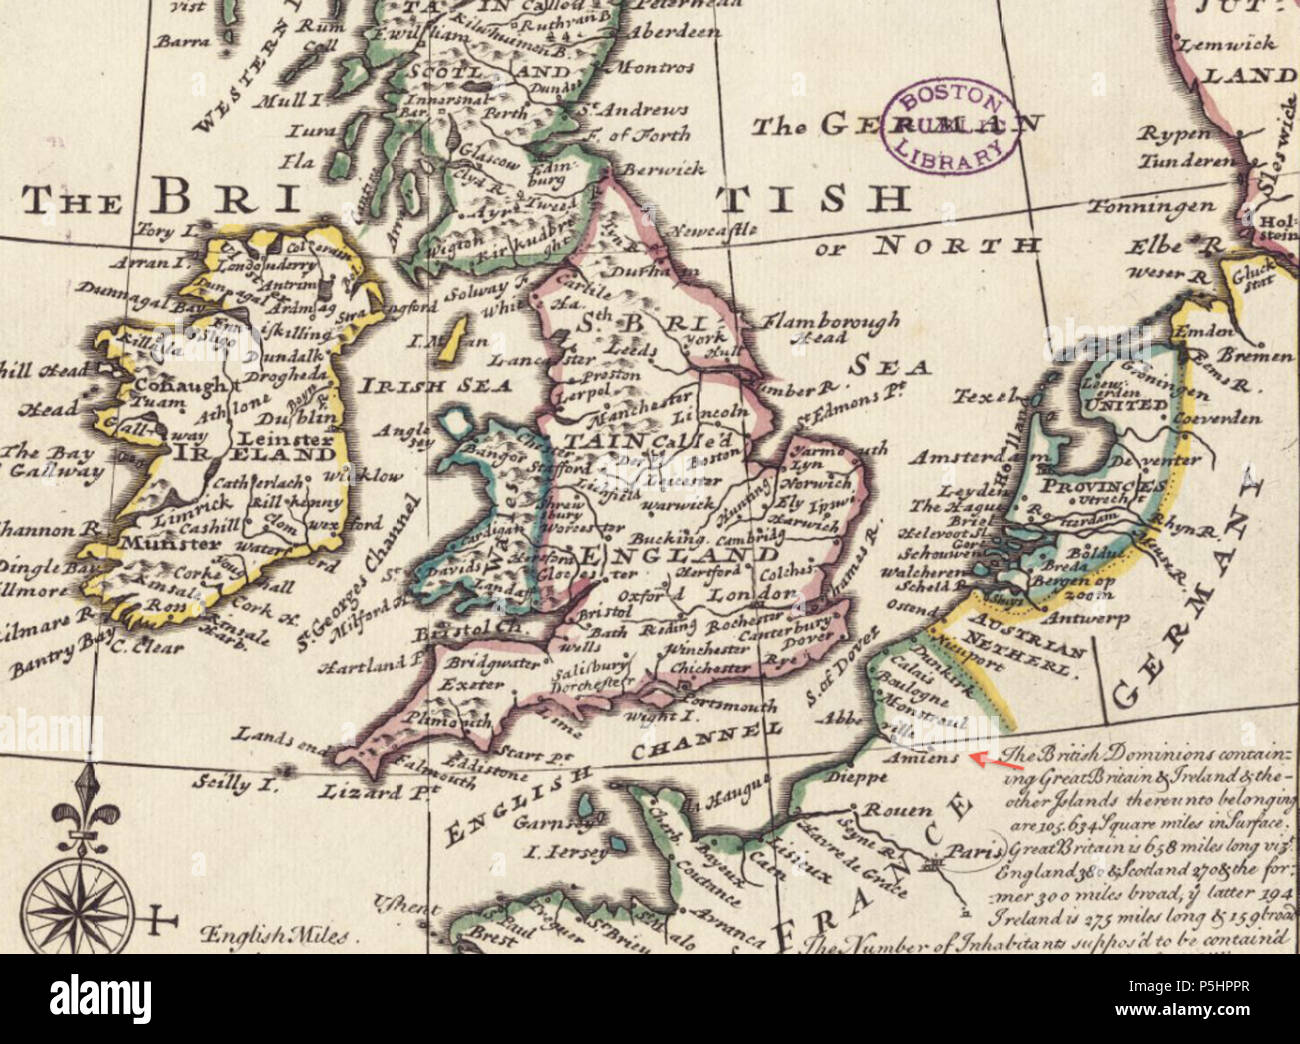 Map Of Holland And Germany.21 1732 Amiens Detail Of General Map Of Great Britain And Ireland